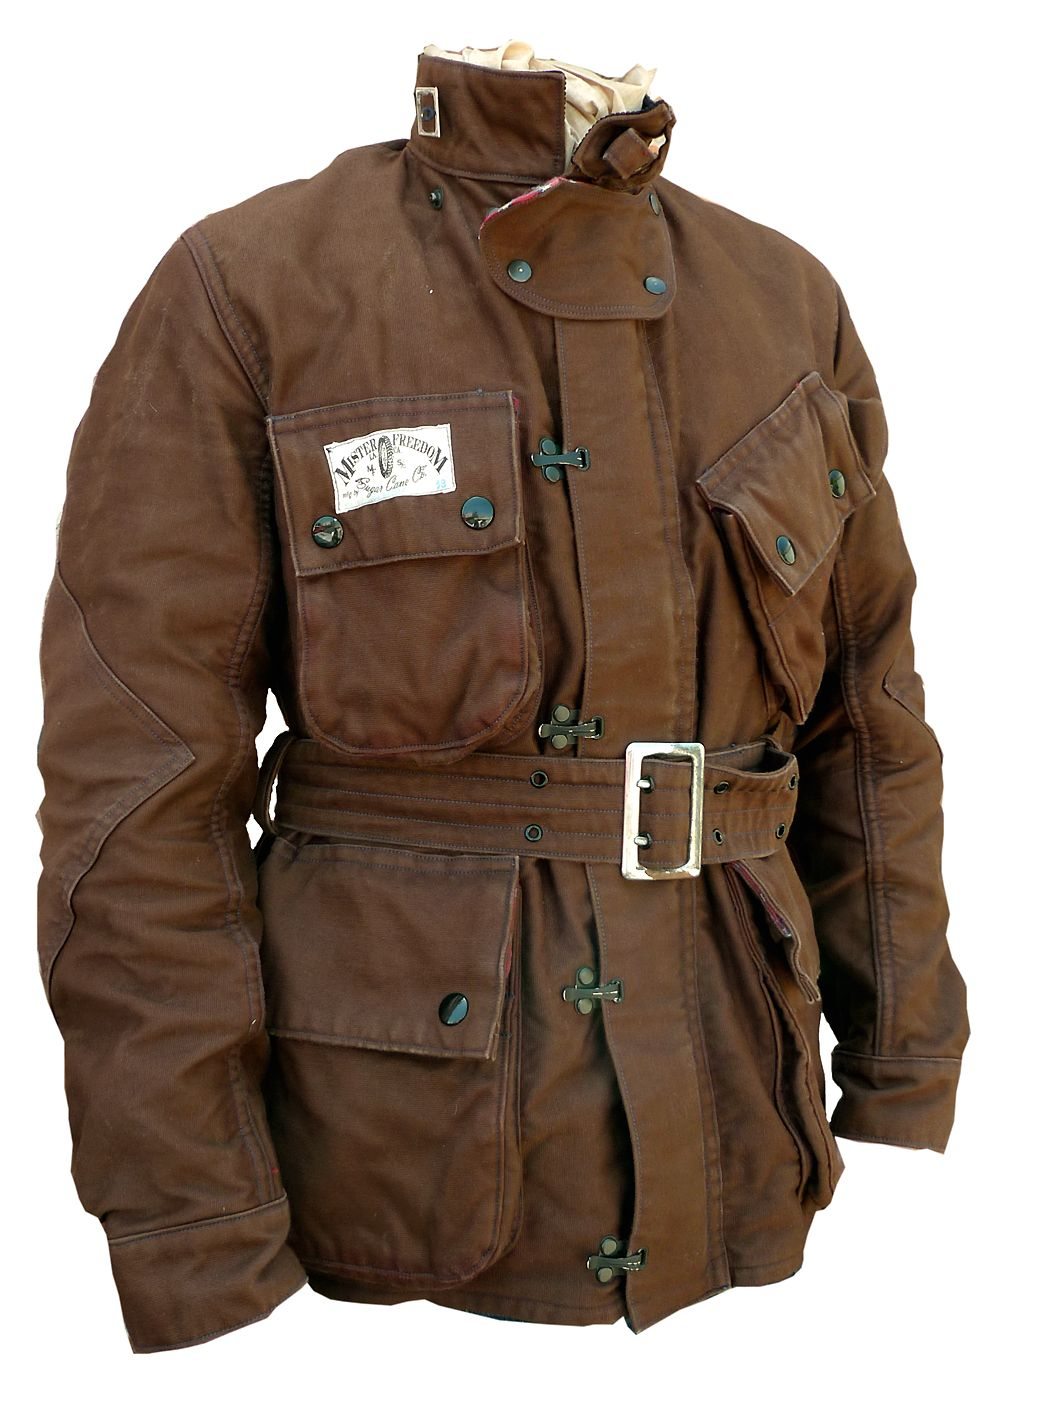 0795210c491e Mr Freedom Wax Jackets, Cool Jackets, Winter Jackets, Riding Jacket, Riding  Gear